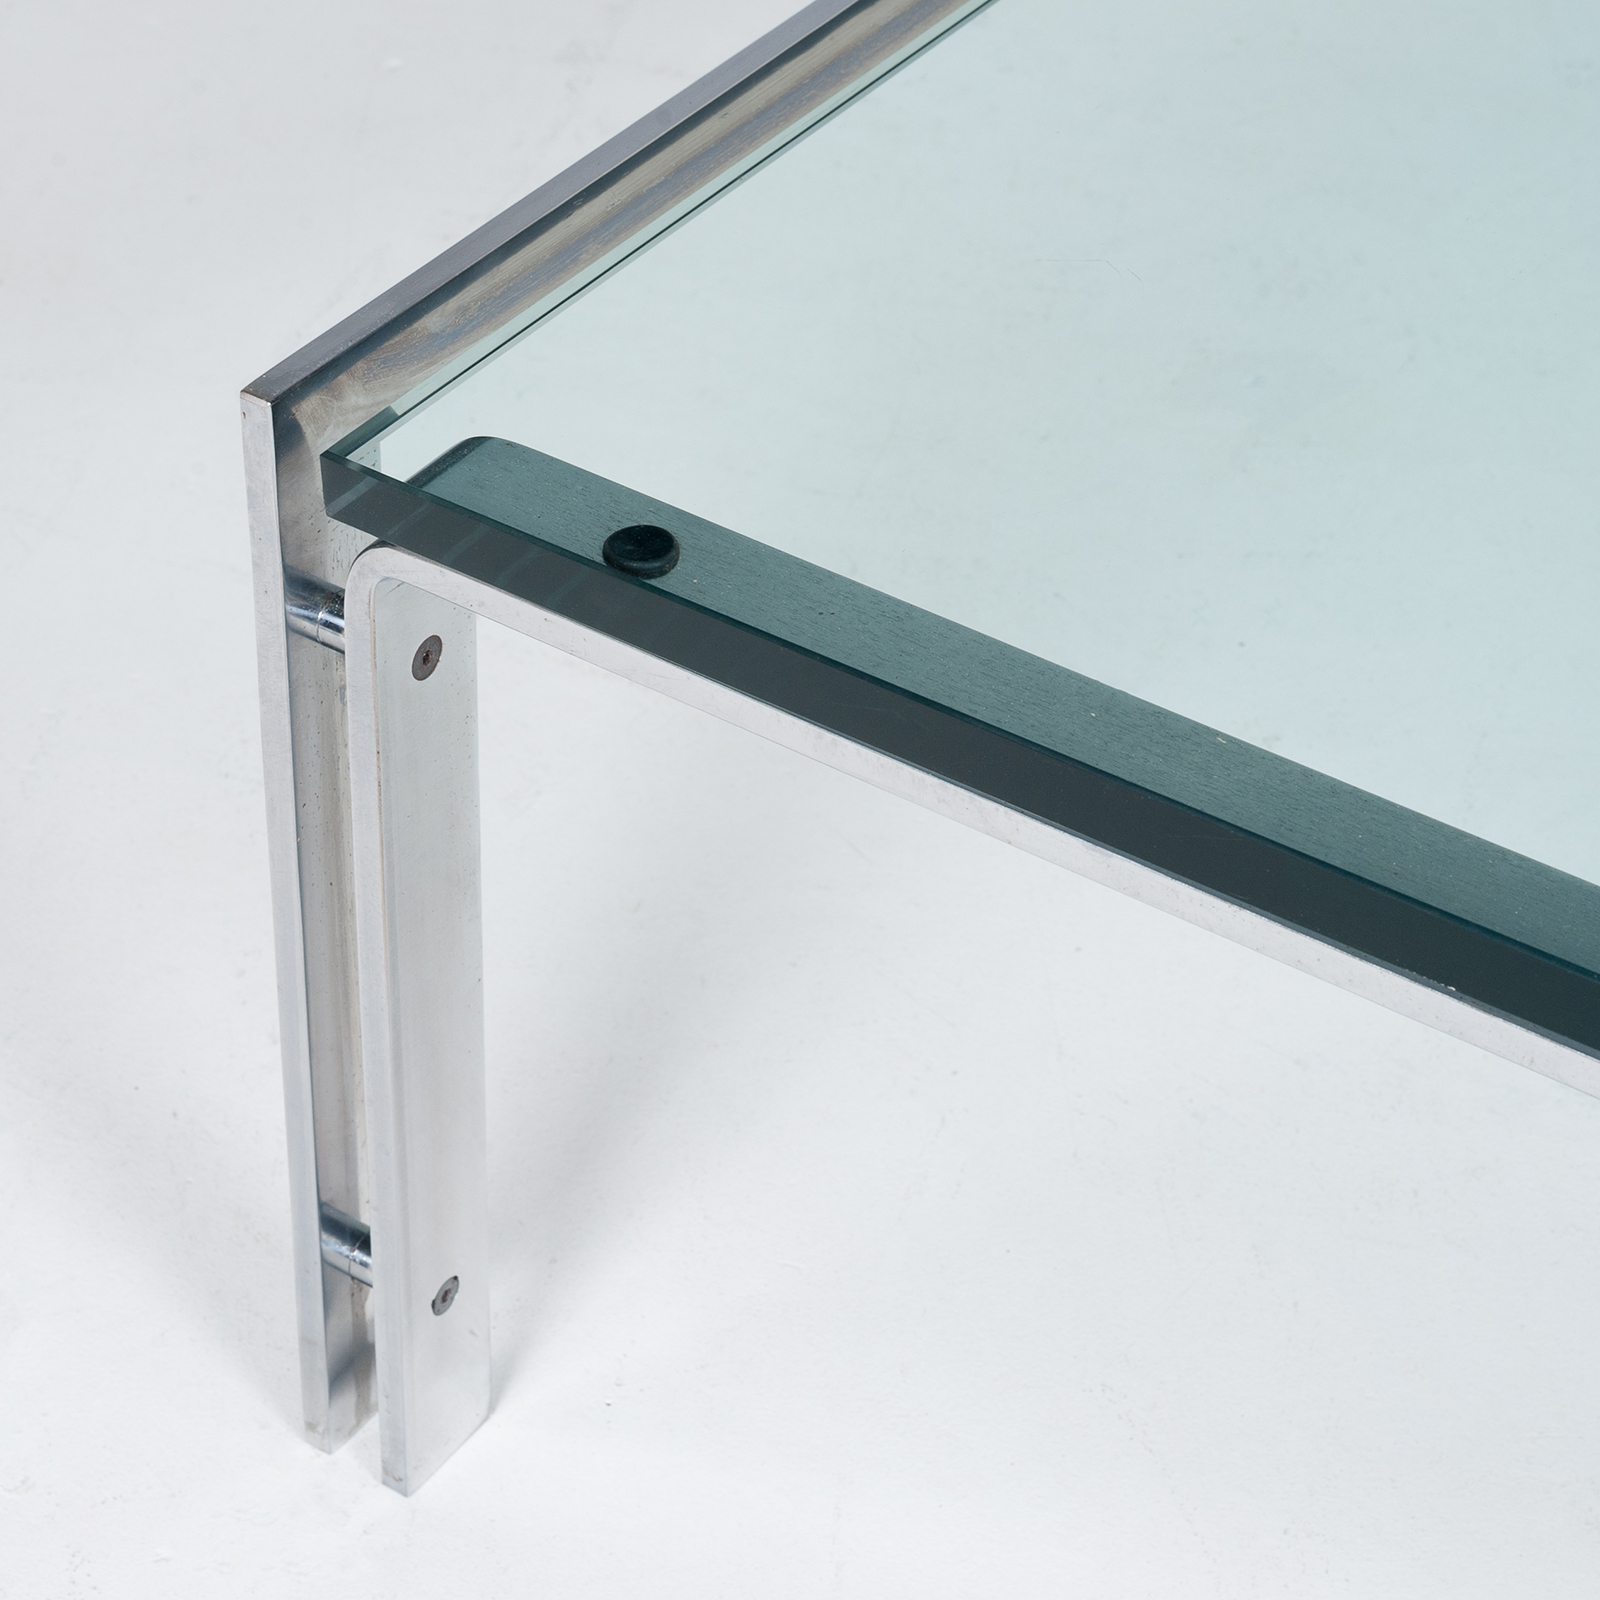 Coffee Table By Metaform In Glass And Chrome, 1970s, The Netherlands61